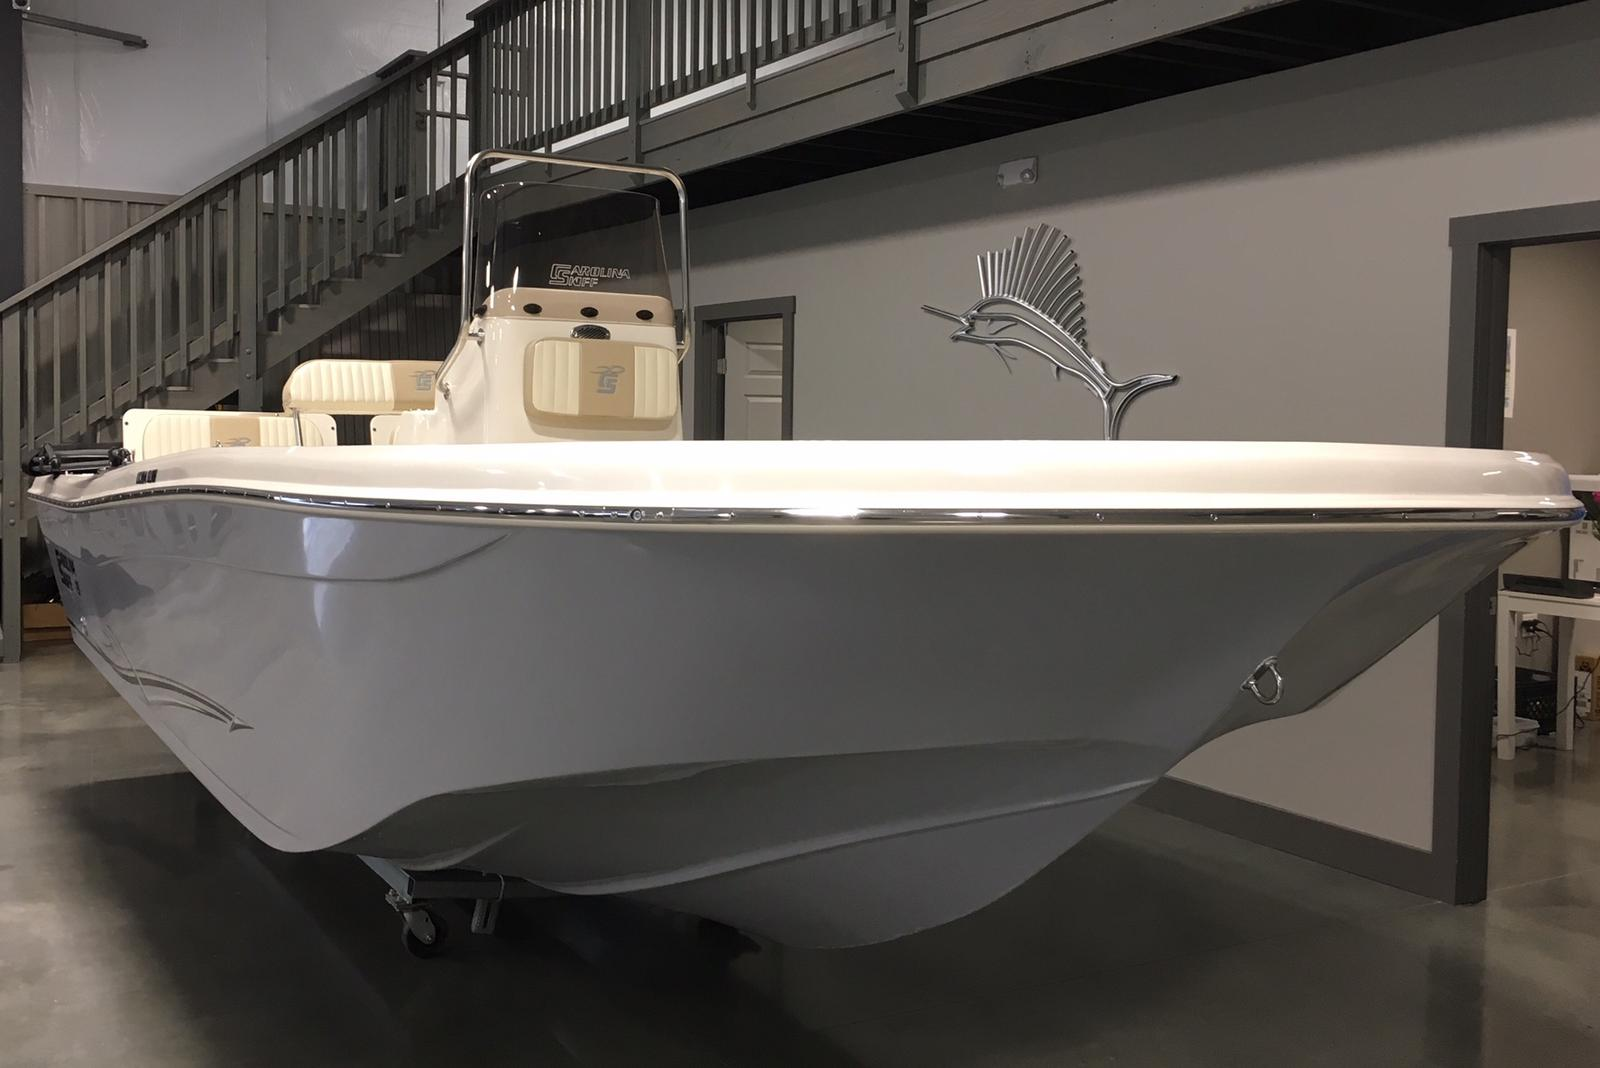 Carolina Skiff 19 Ultra Elite